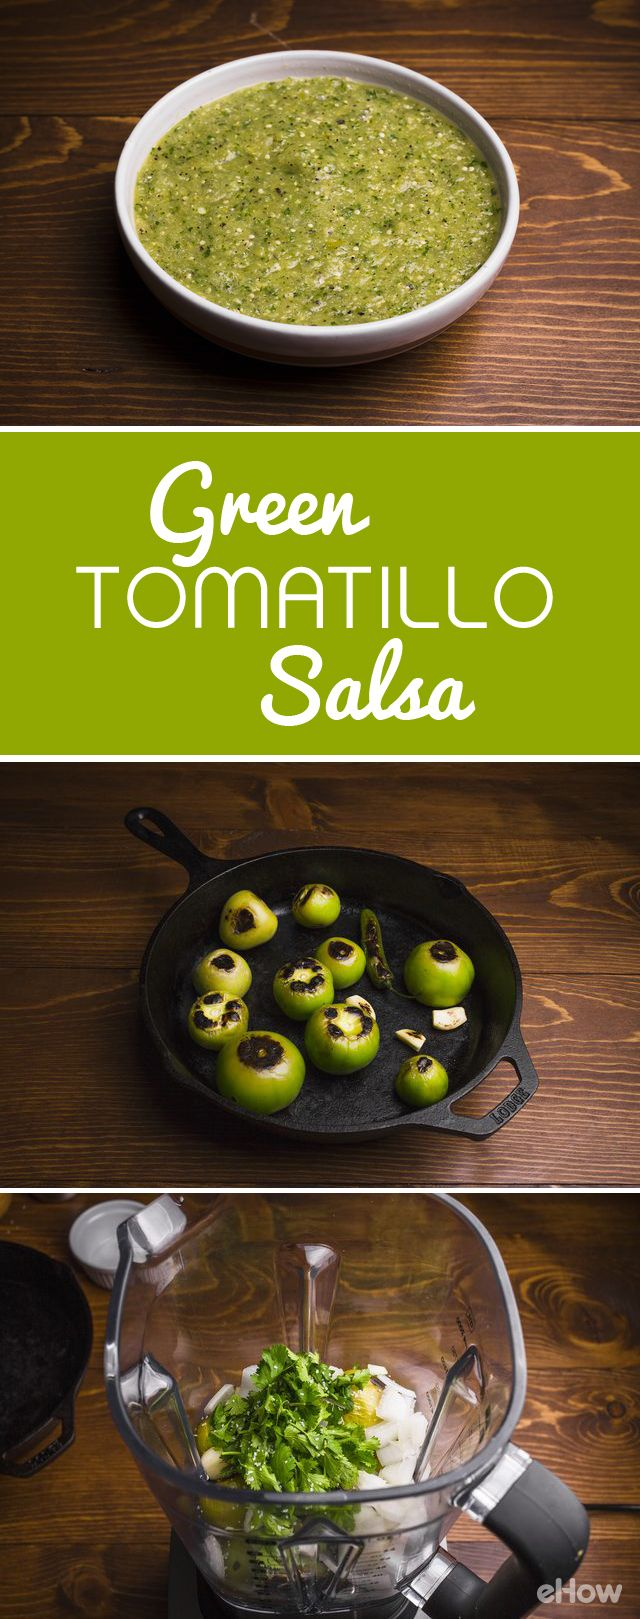 Nothing beats fresh, homemade green tomatillo salsa! The great thing about this recipes is that you can make it as mild or as spicy as you like; simply taste as you go. Serve with chips or over eggs! http://www.ehow.com/how_2254469_green-tomatillo-salsa.html?utm_source=pinterest.com&utm_medium=referral&utm_content=freestyle&utm_campaign=fanpage